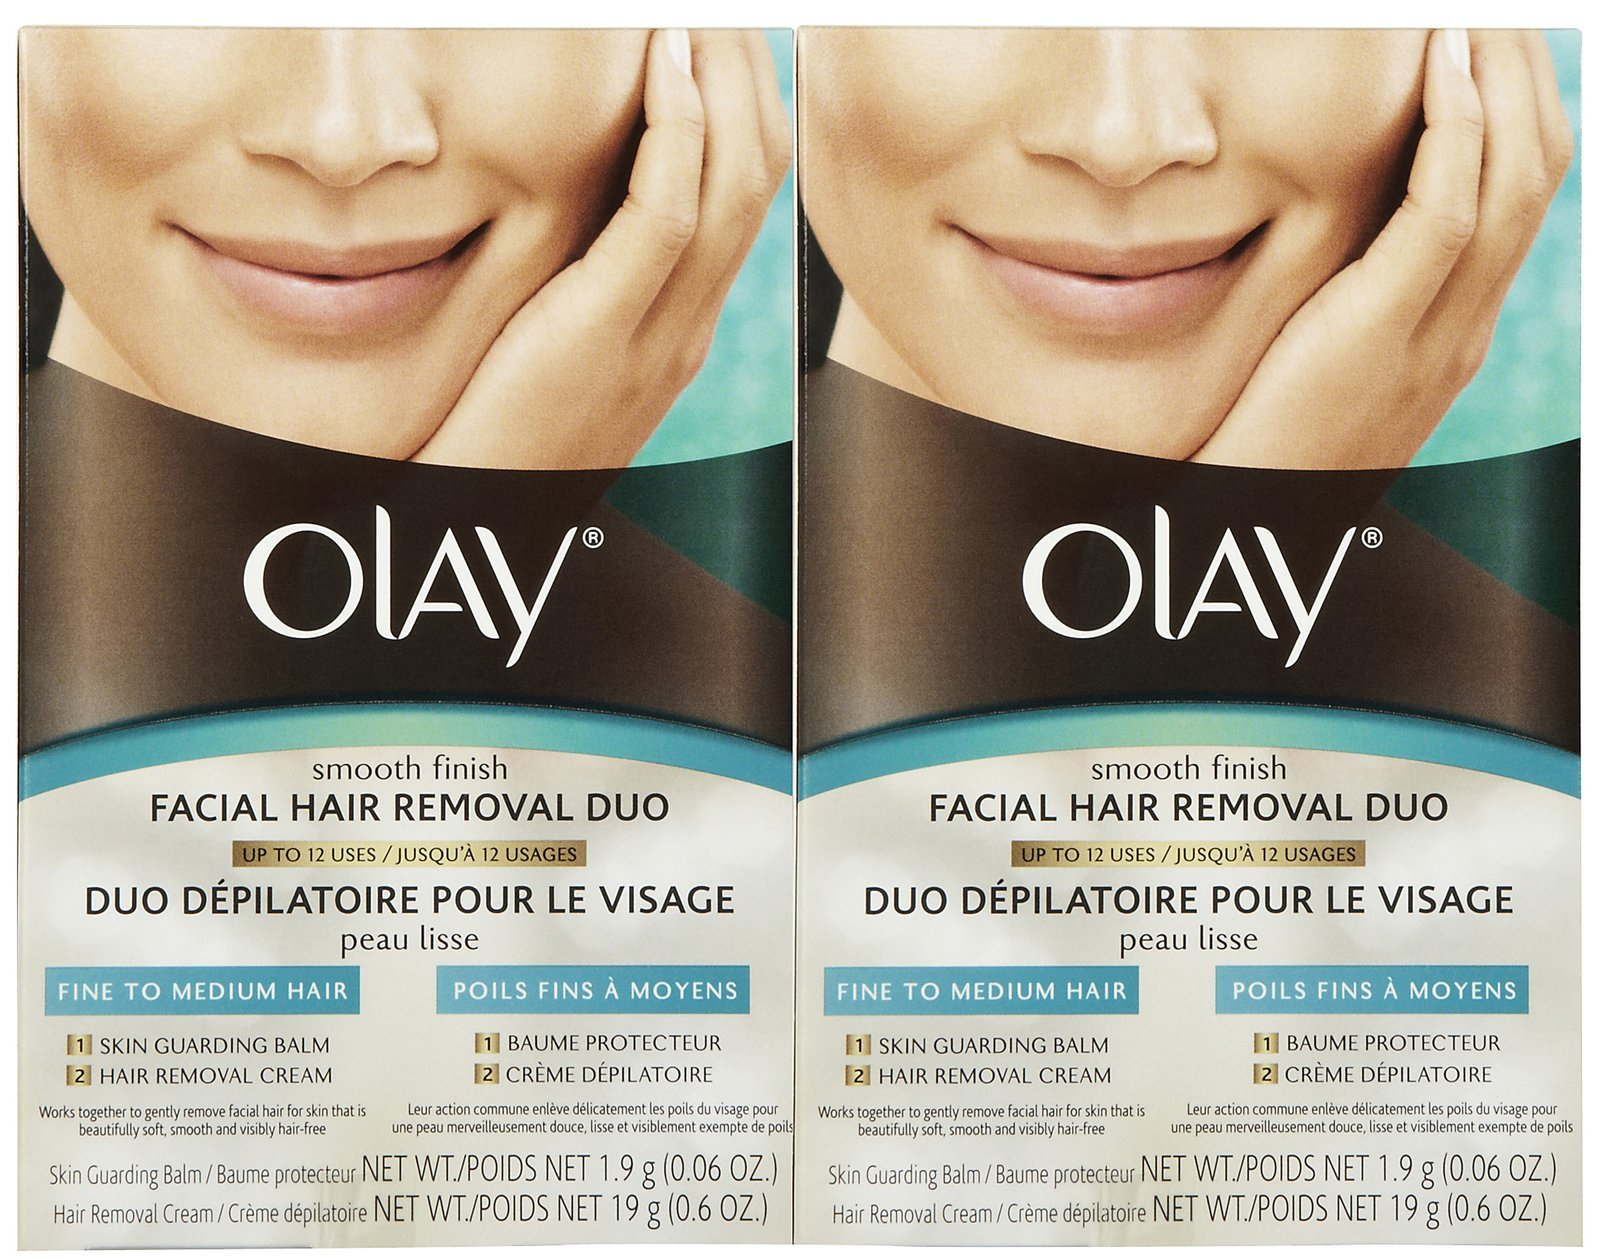 Olay Facial Hair Removal Duo - 2 pk product image